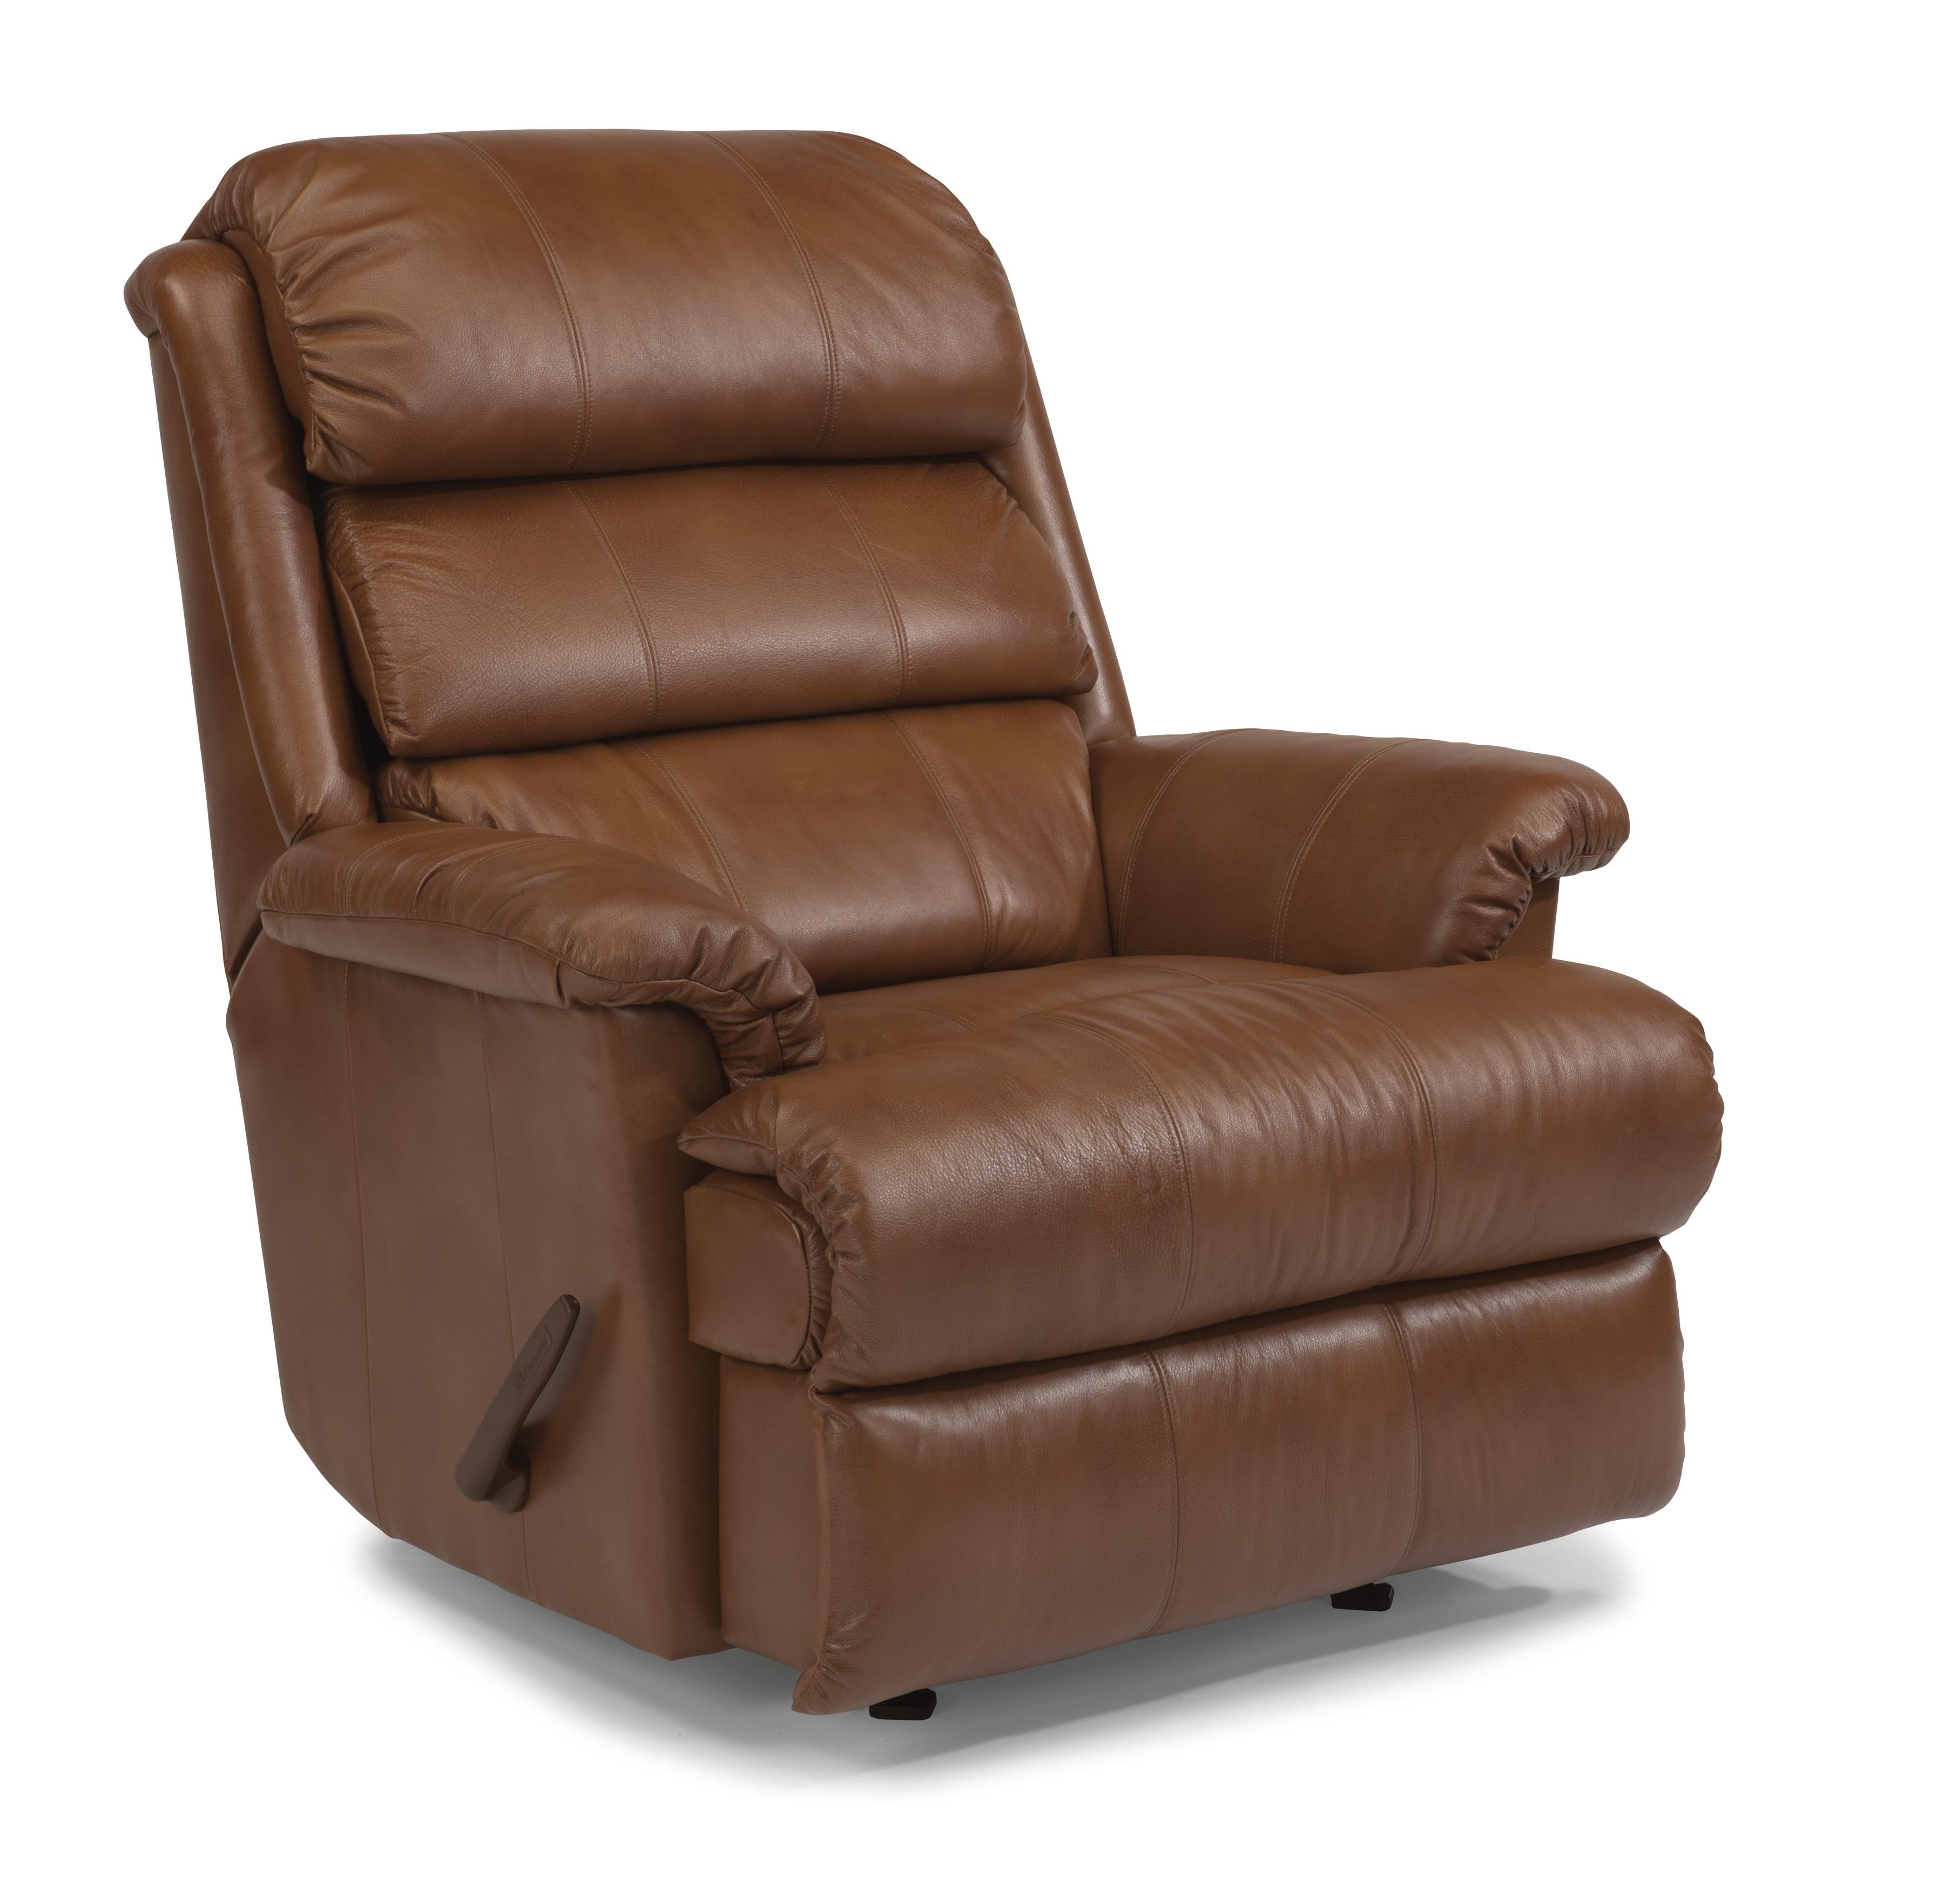 Flexsteel Accents Power Rocker Recliner - Item Number: 2209-510M